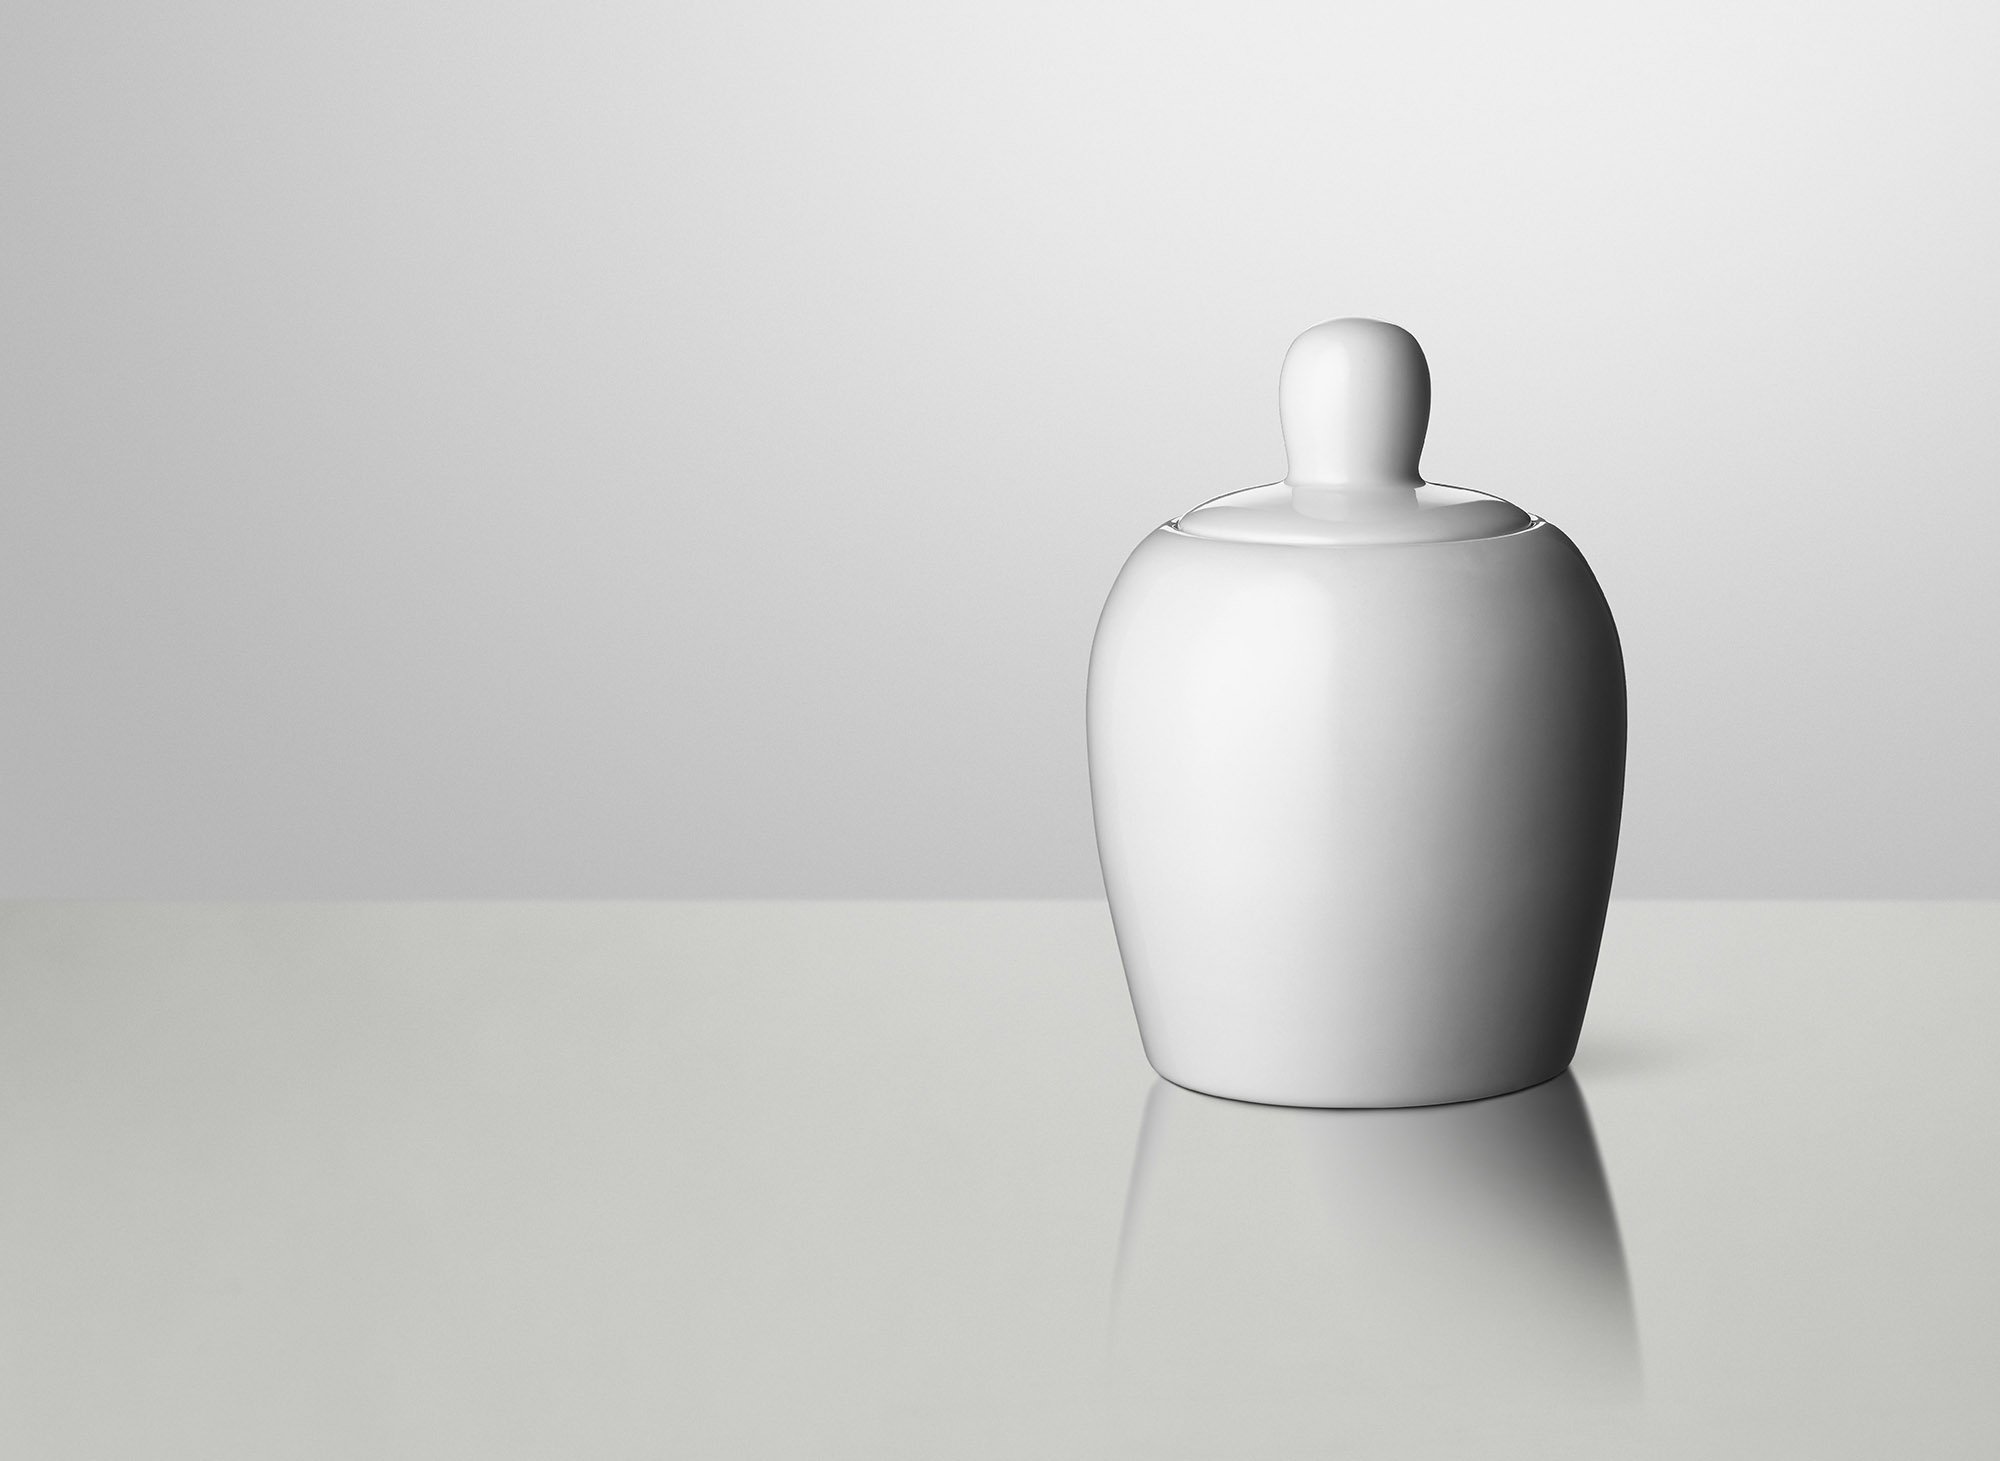 Bulky_Cookie-jar_White_2000x1461